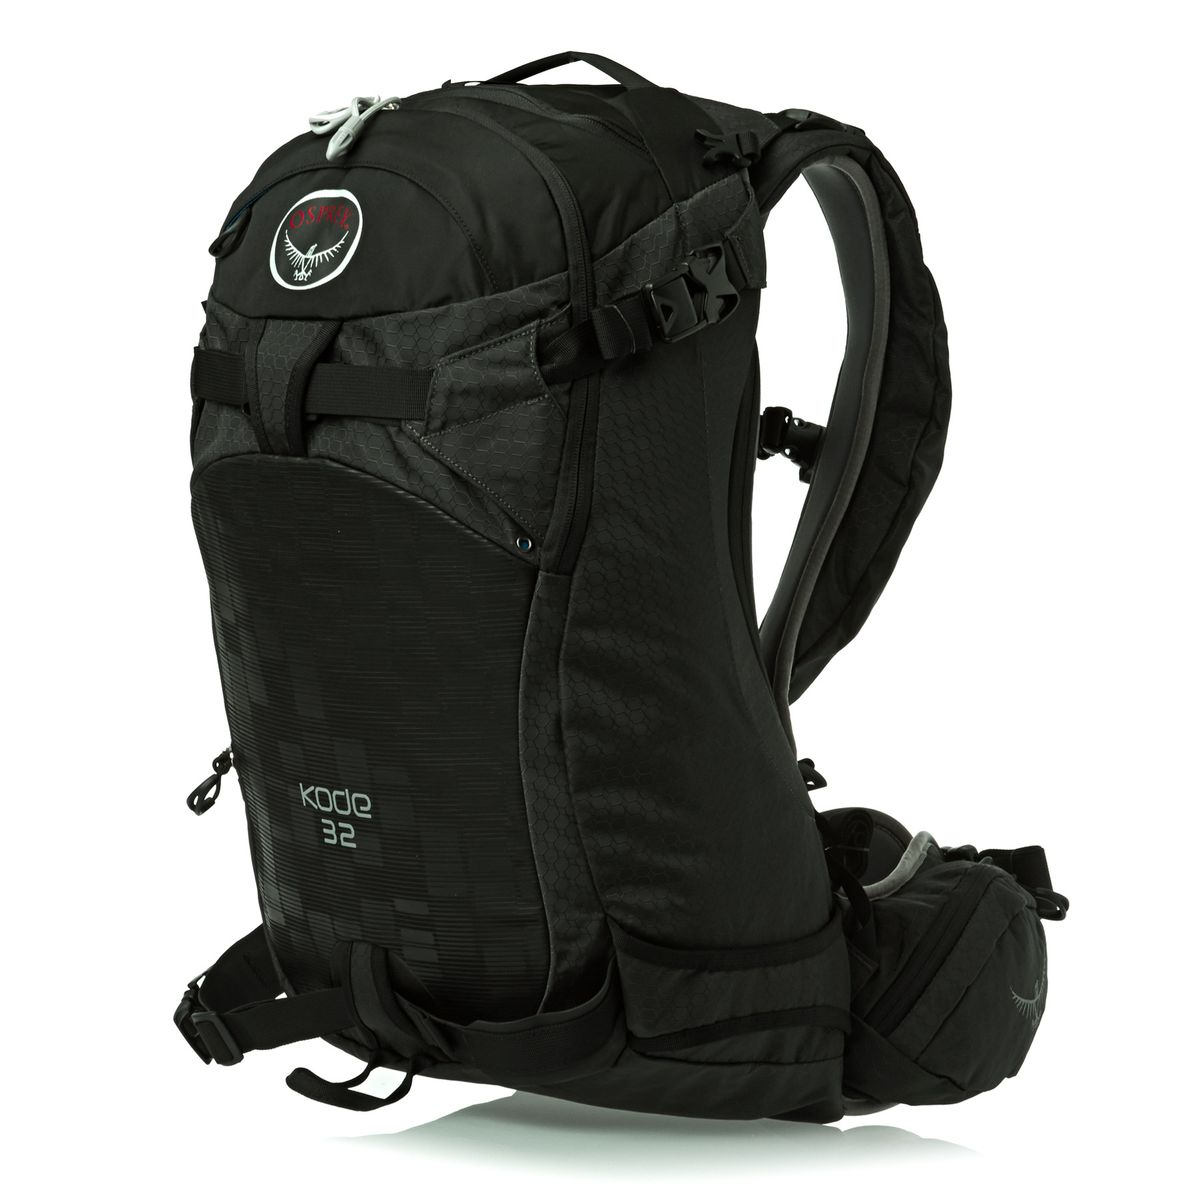 osprey-backpacks-osprey-kode-32-backpack-black